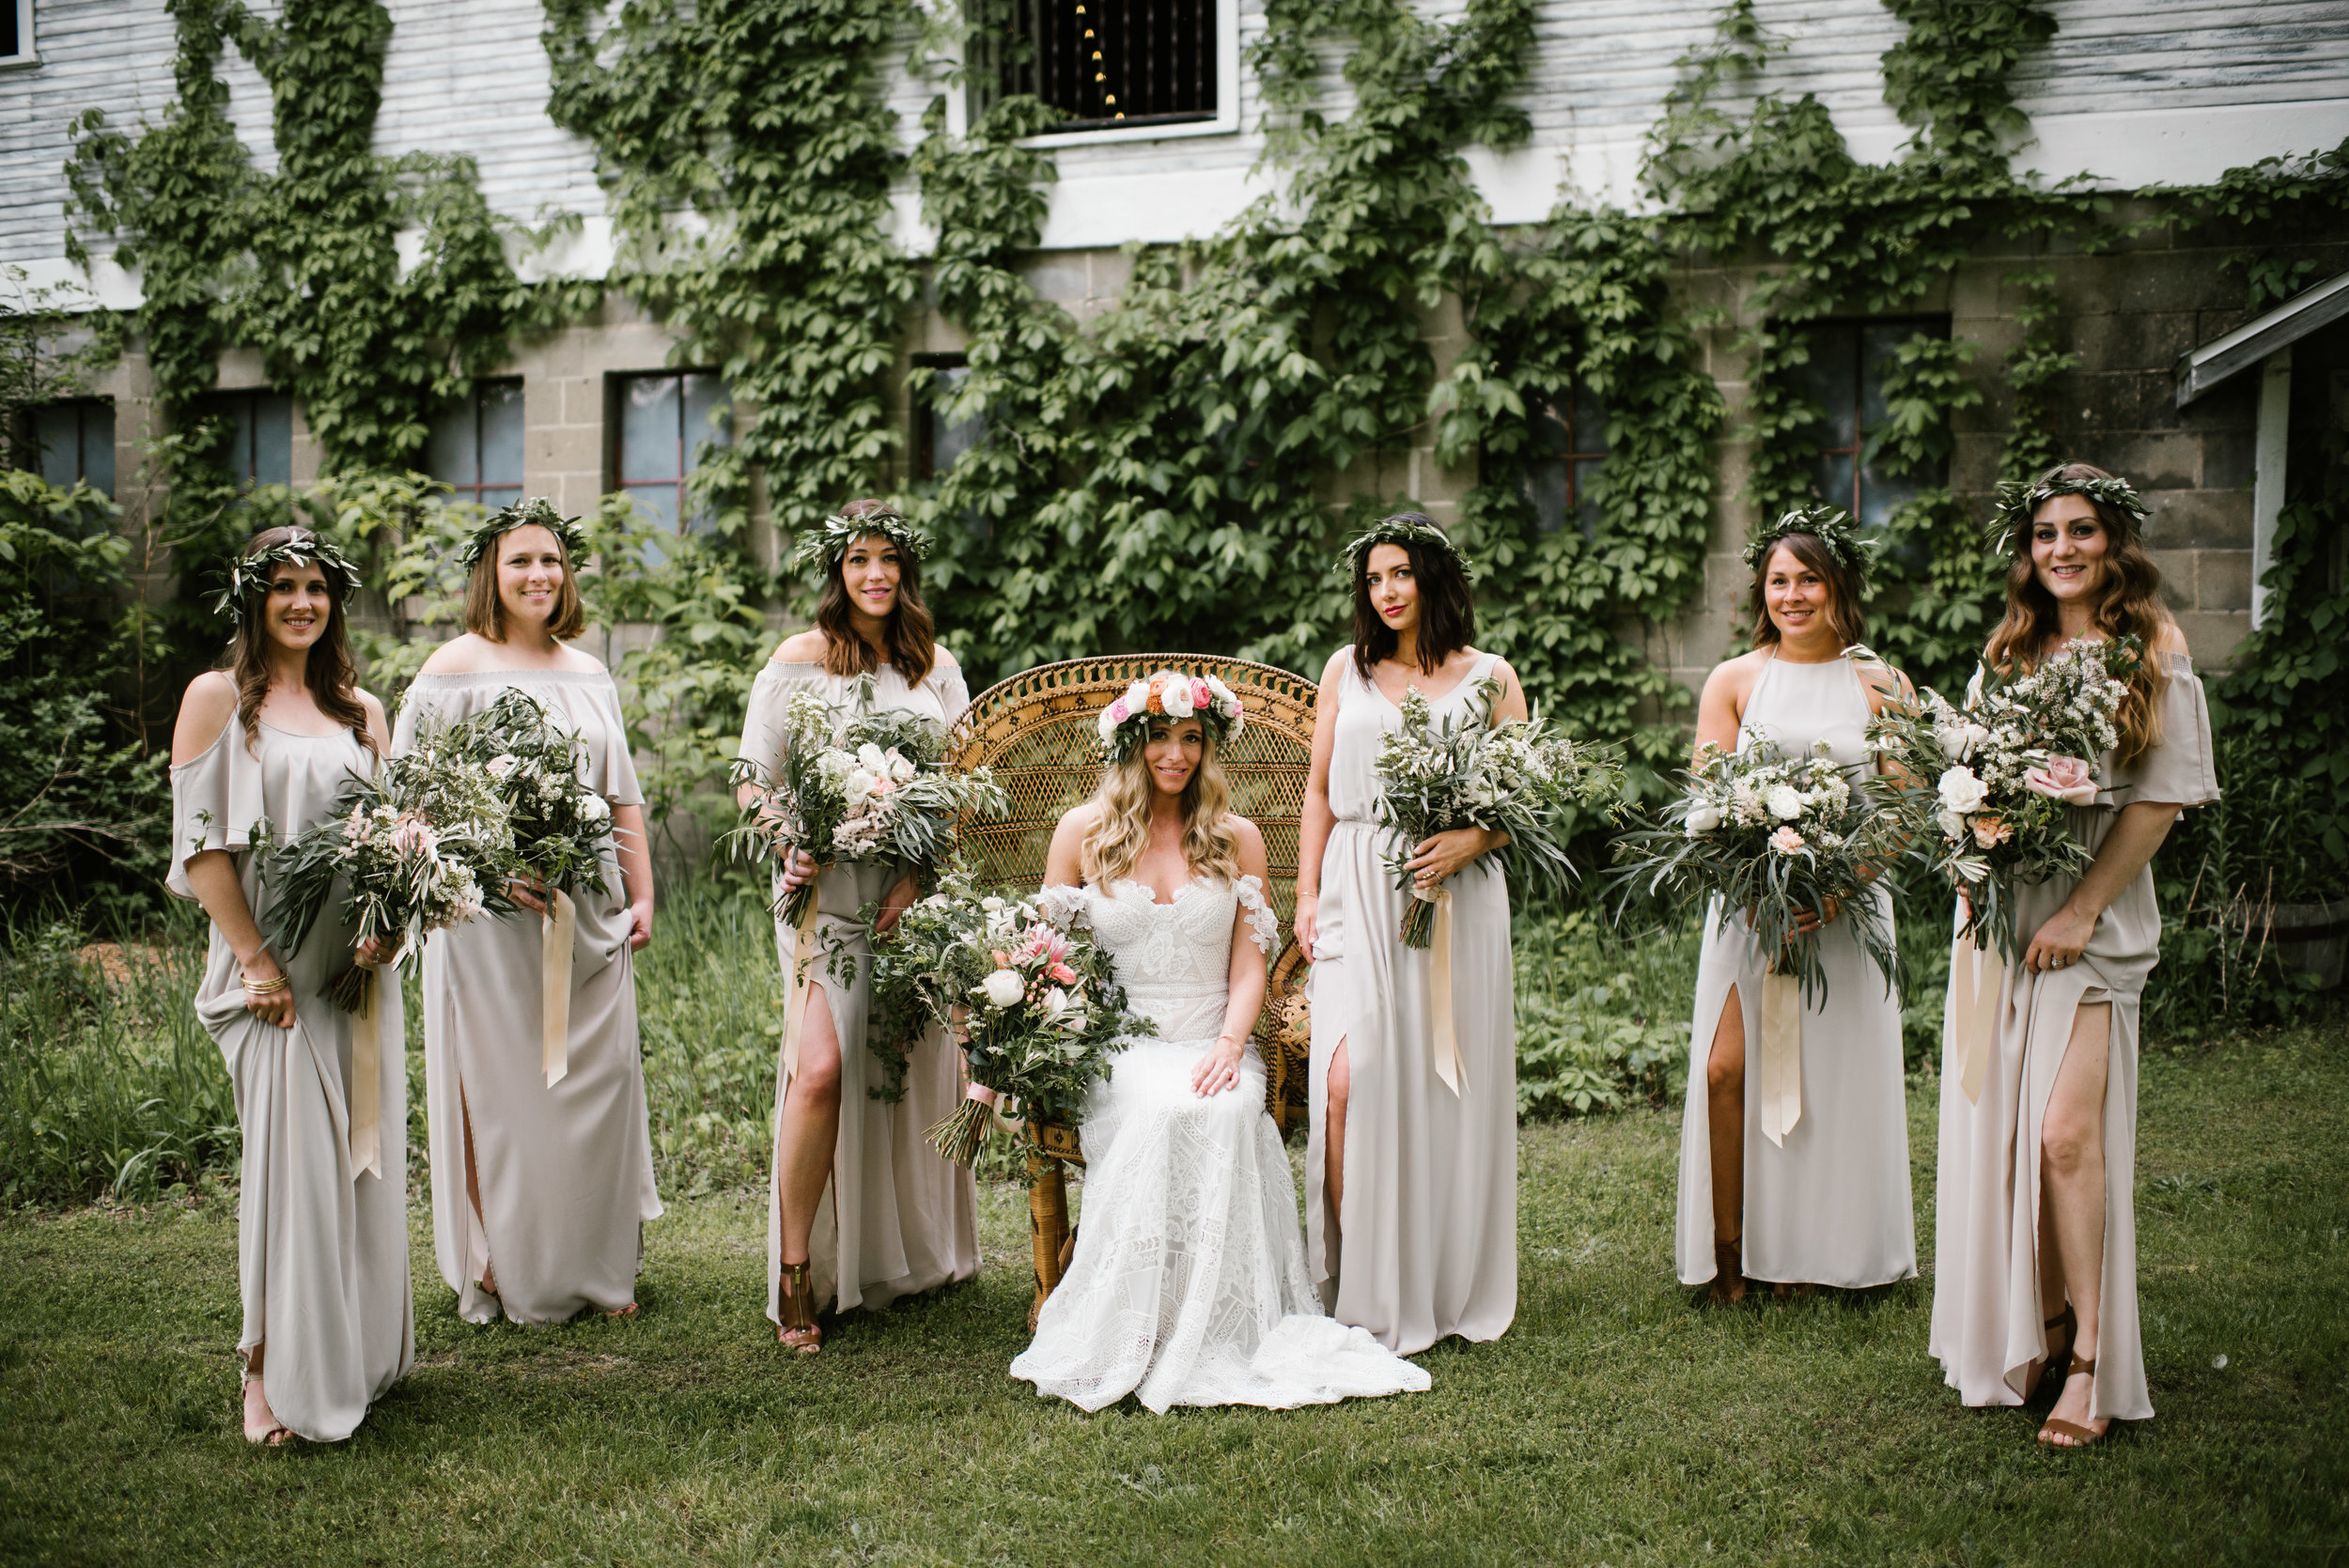 Wedding at the The Blue Dress Barn in Benton Harbor, MI